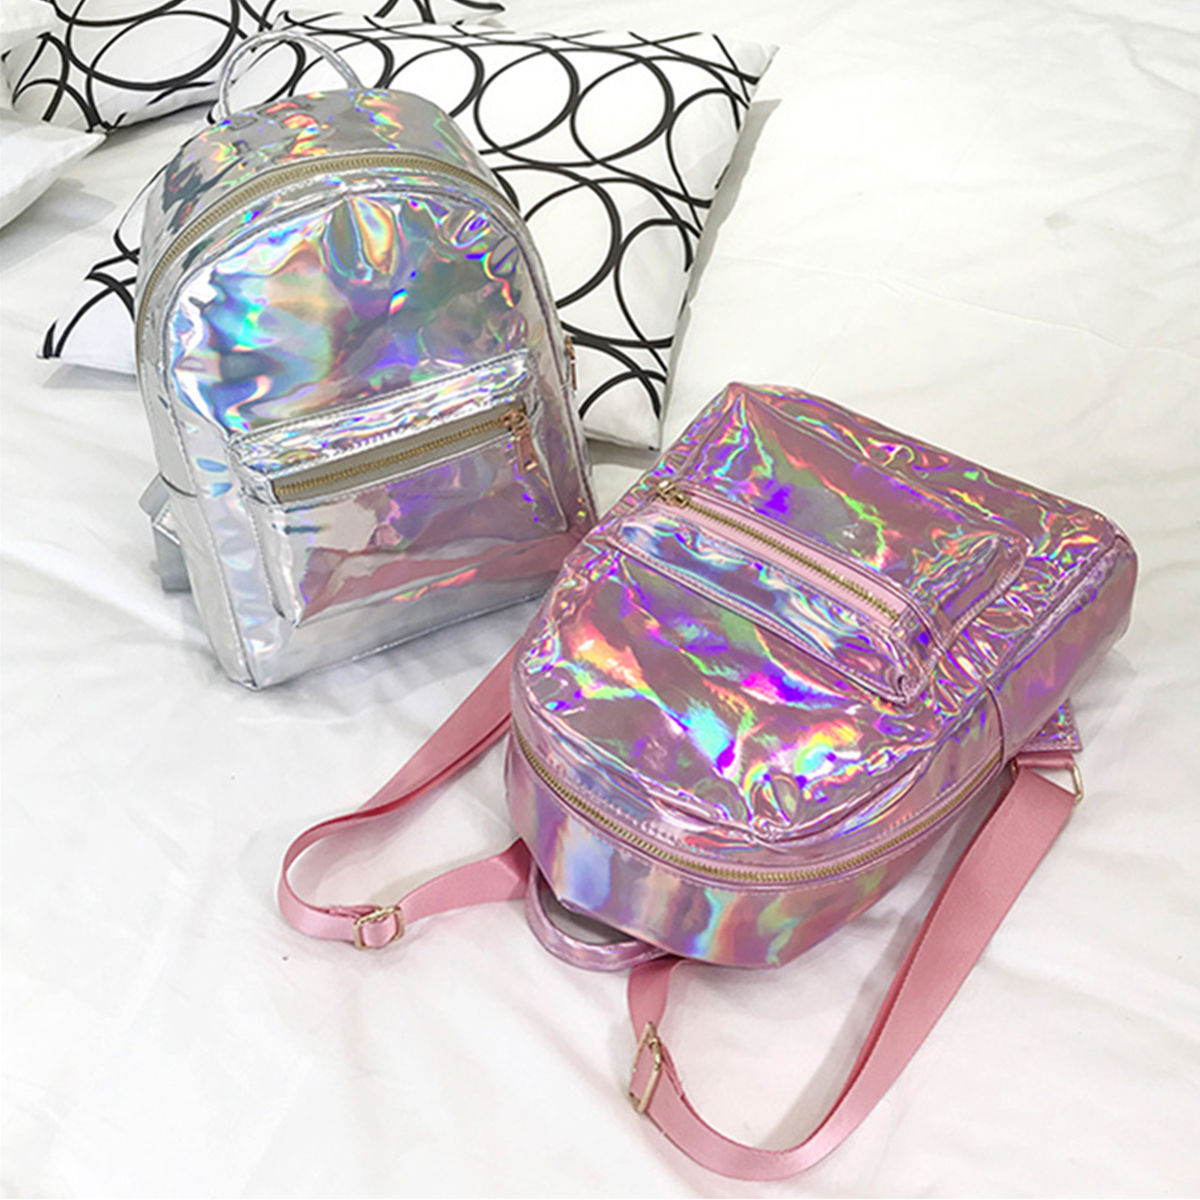 Silver Gold Pink Laser Backpack women girls Bag leather Holographic Backpack   school bags for teenage girls laser head owx8060 owy8075 onp8170